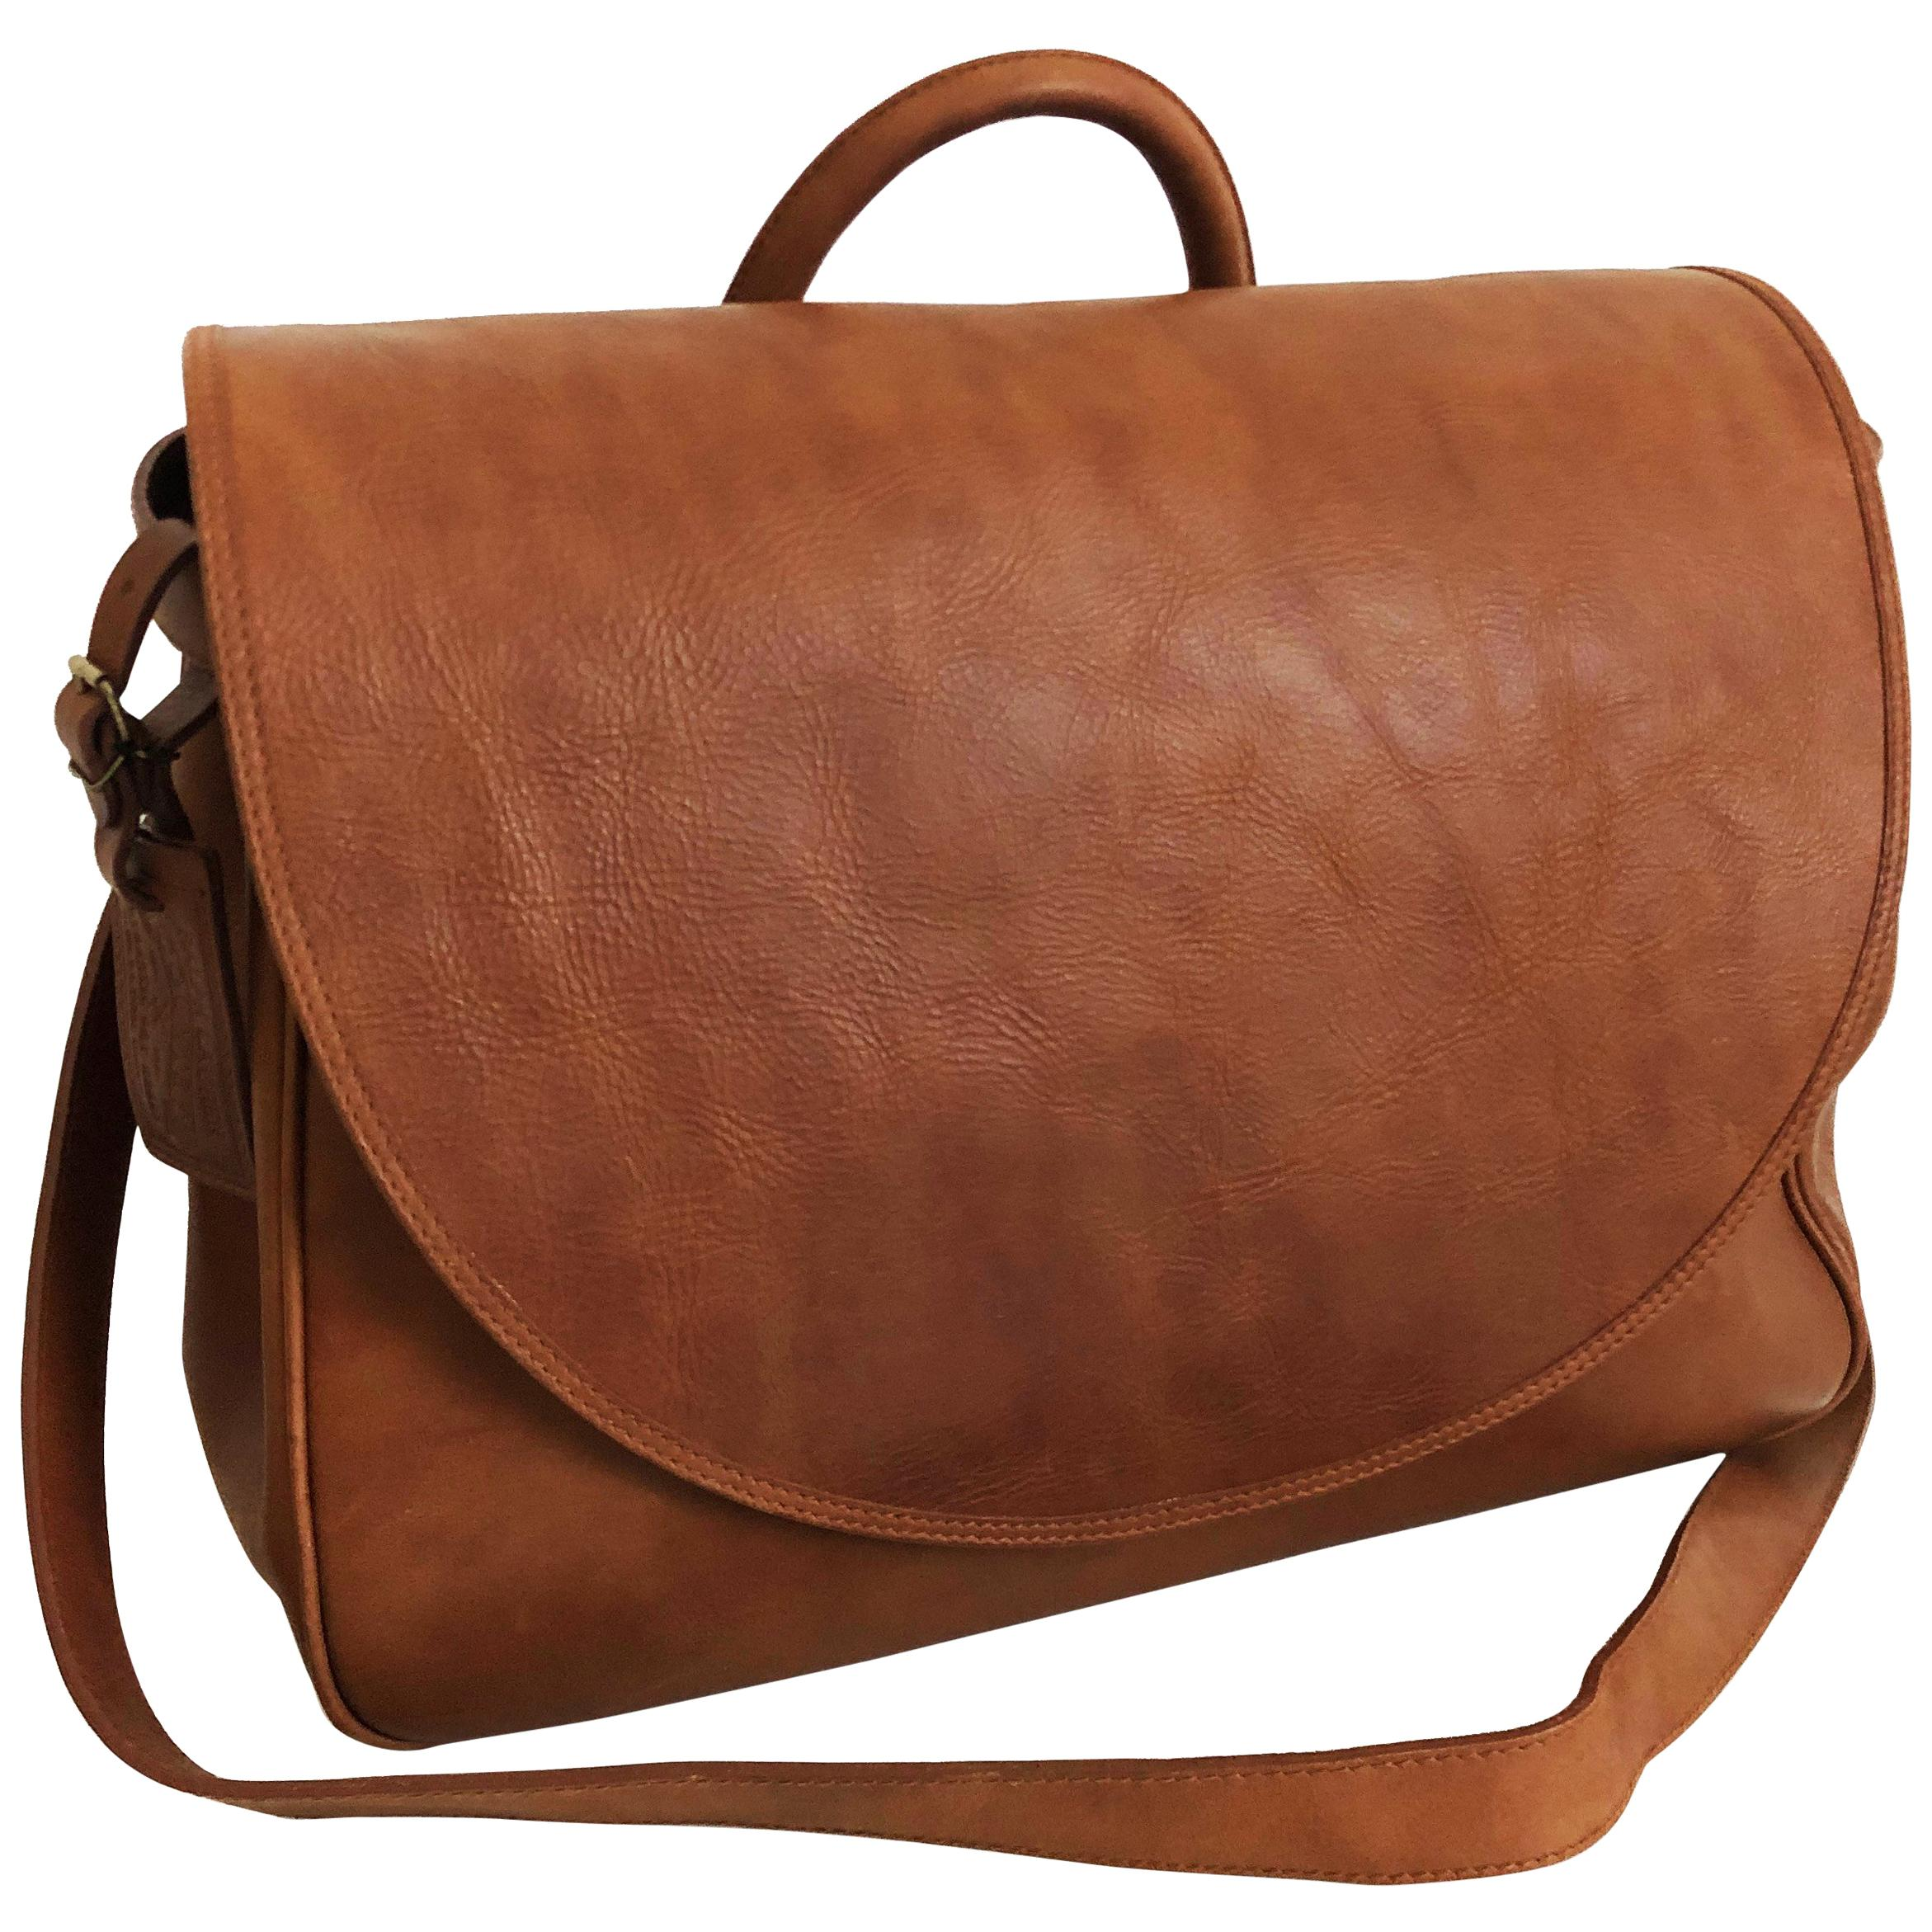 420b05a6f8e7 Vintage and Designer Bags - 22,779 For Sale at 1stdibs